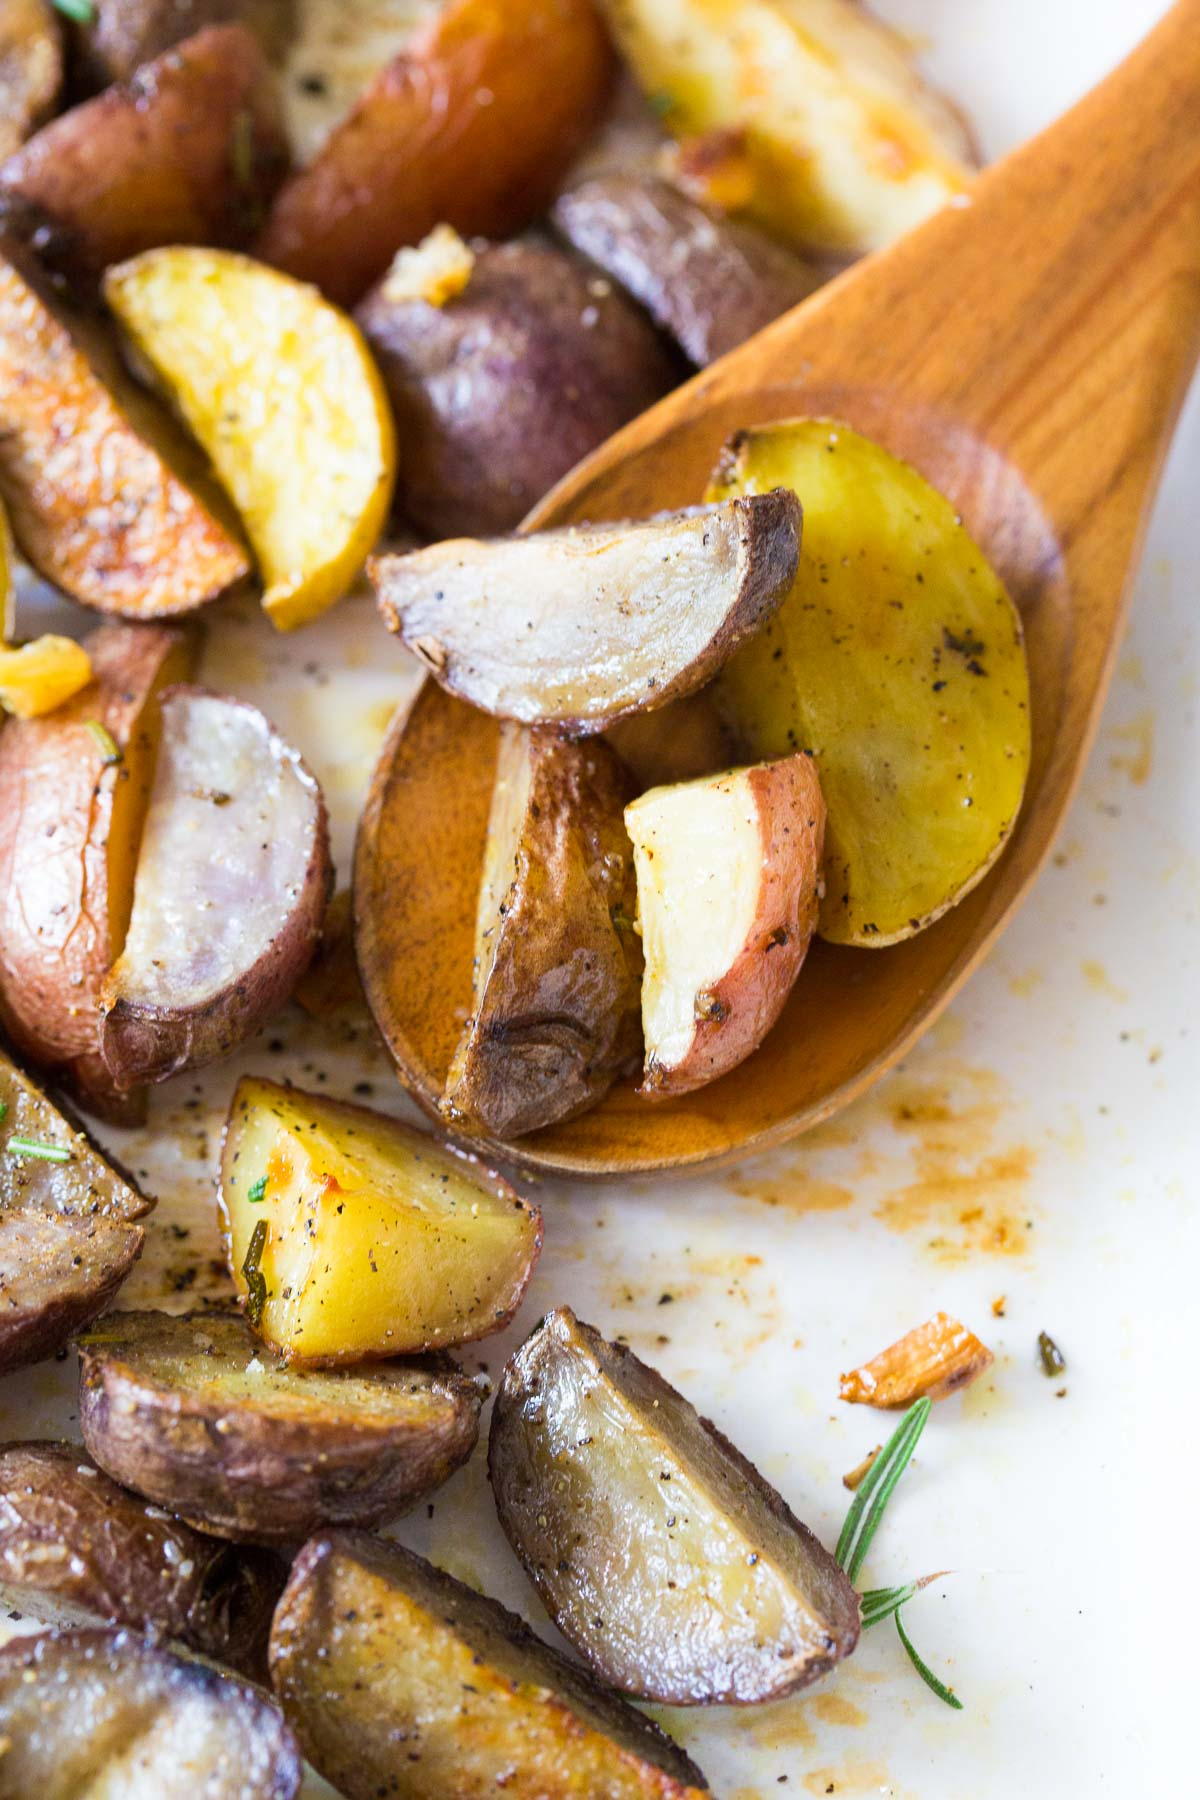 roasted potatoes with a wooden spoon on baking sheet